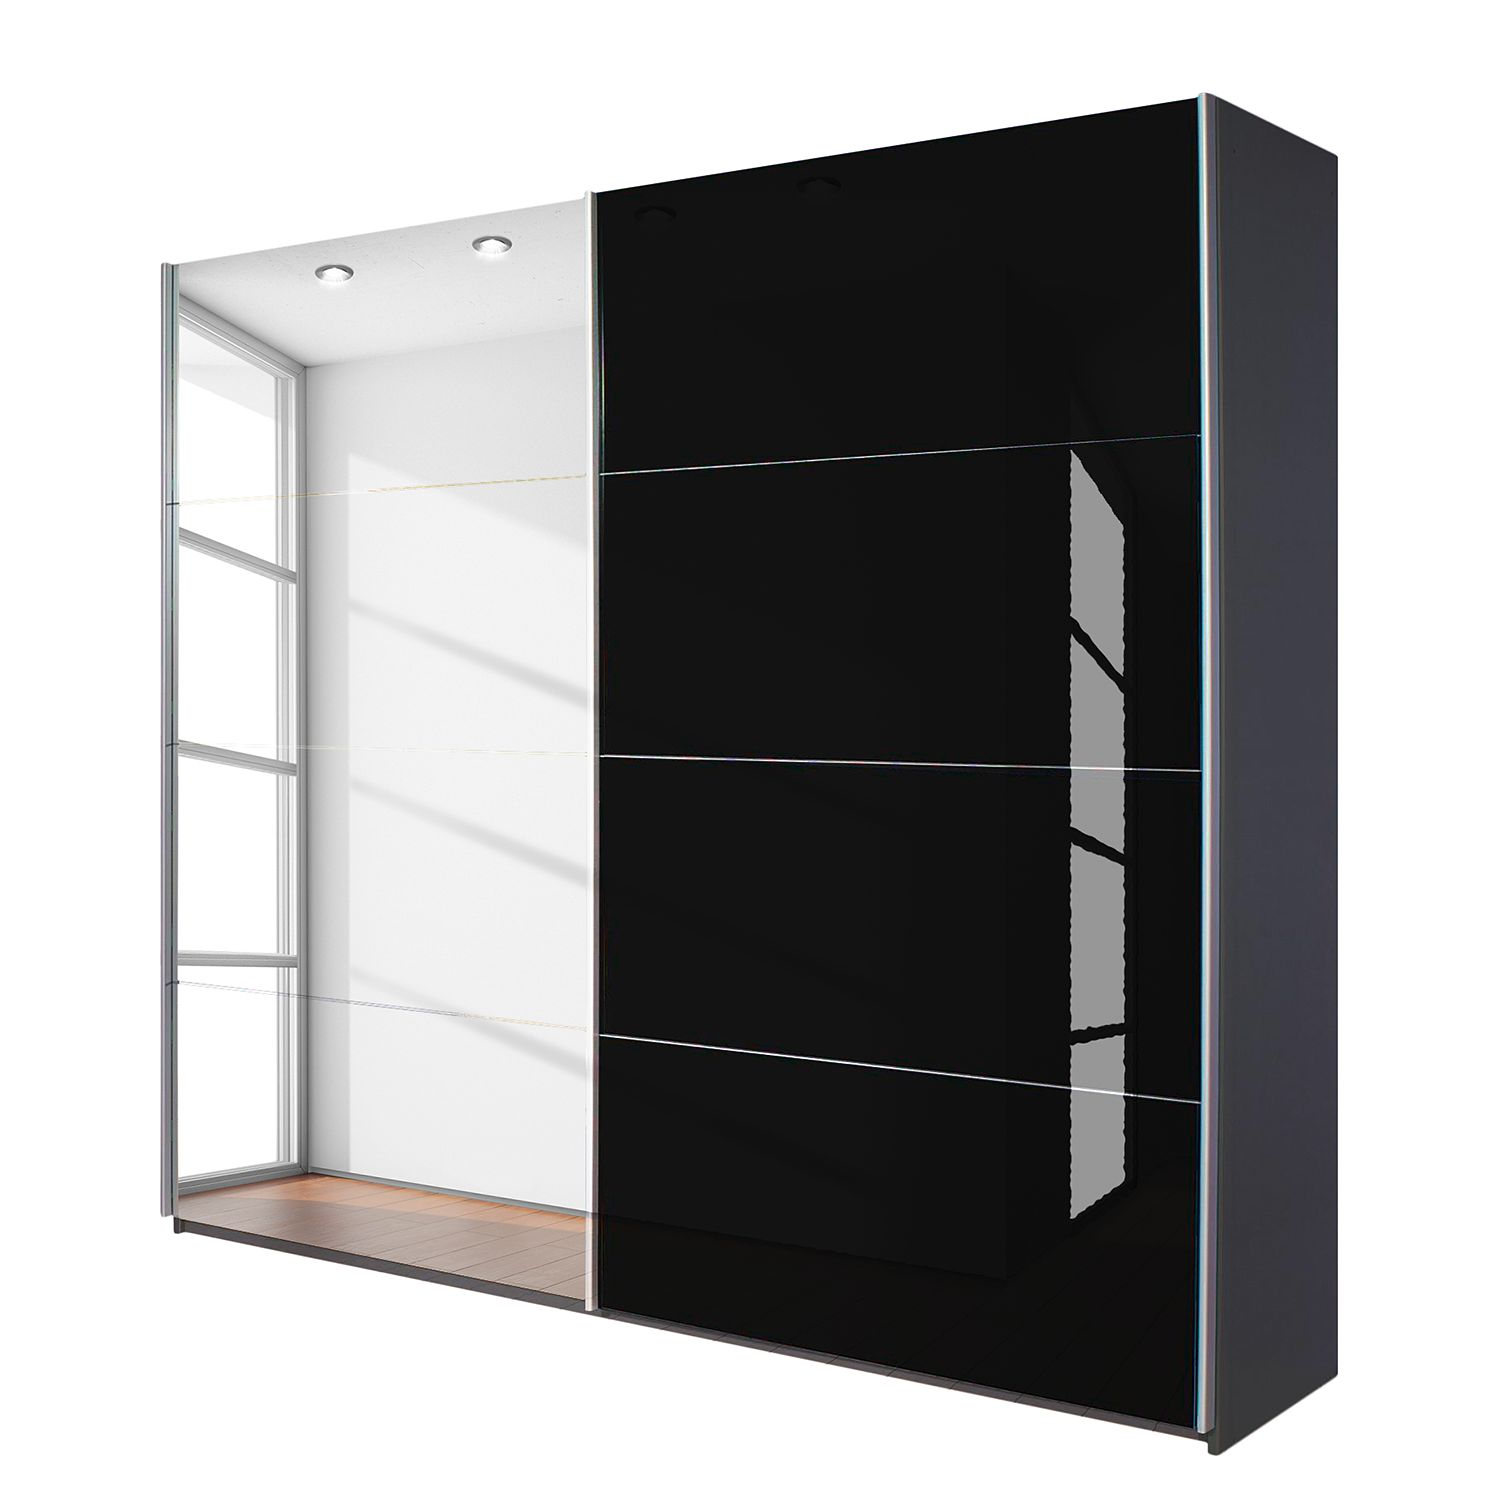 schwebet renschrank spiegel strass preisvergleich die besten angebote online kaufen. Black Bedroom Furniture Sets. Home Design Ideas